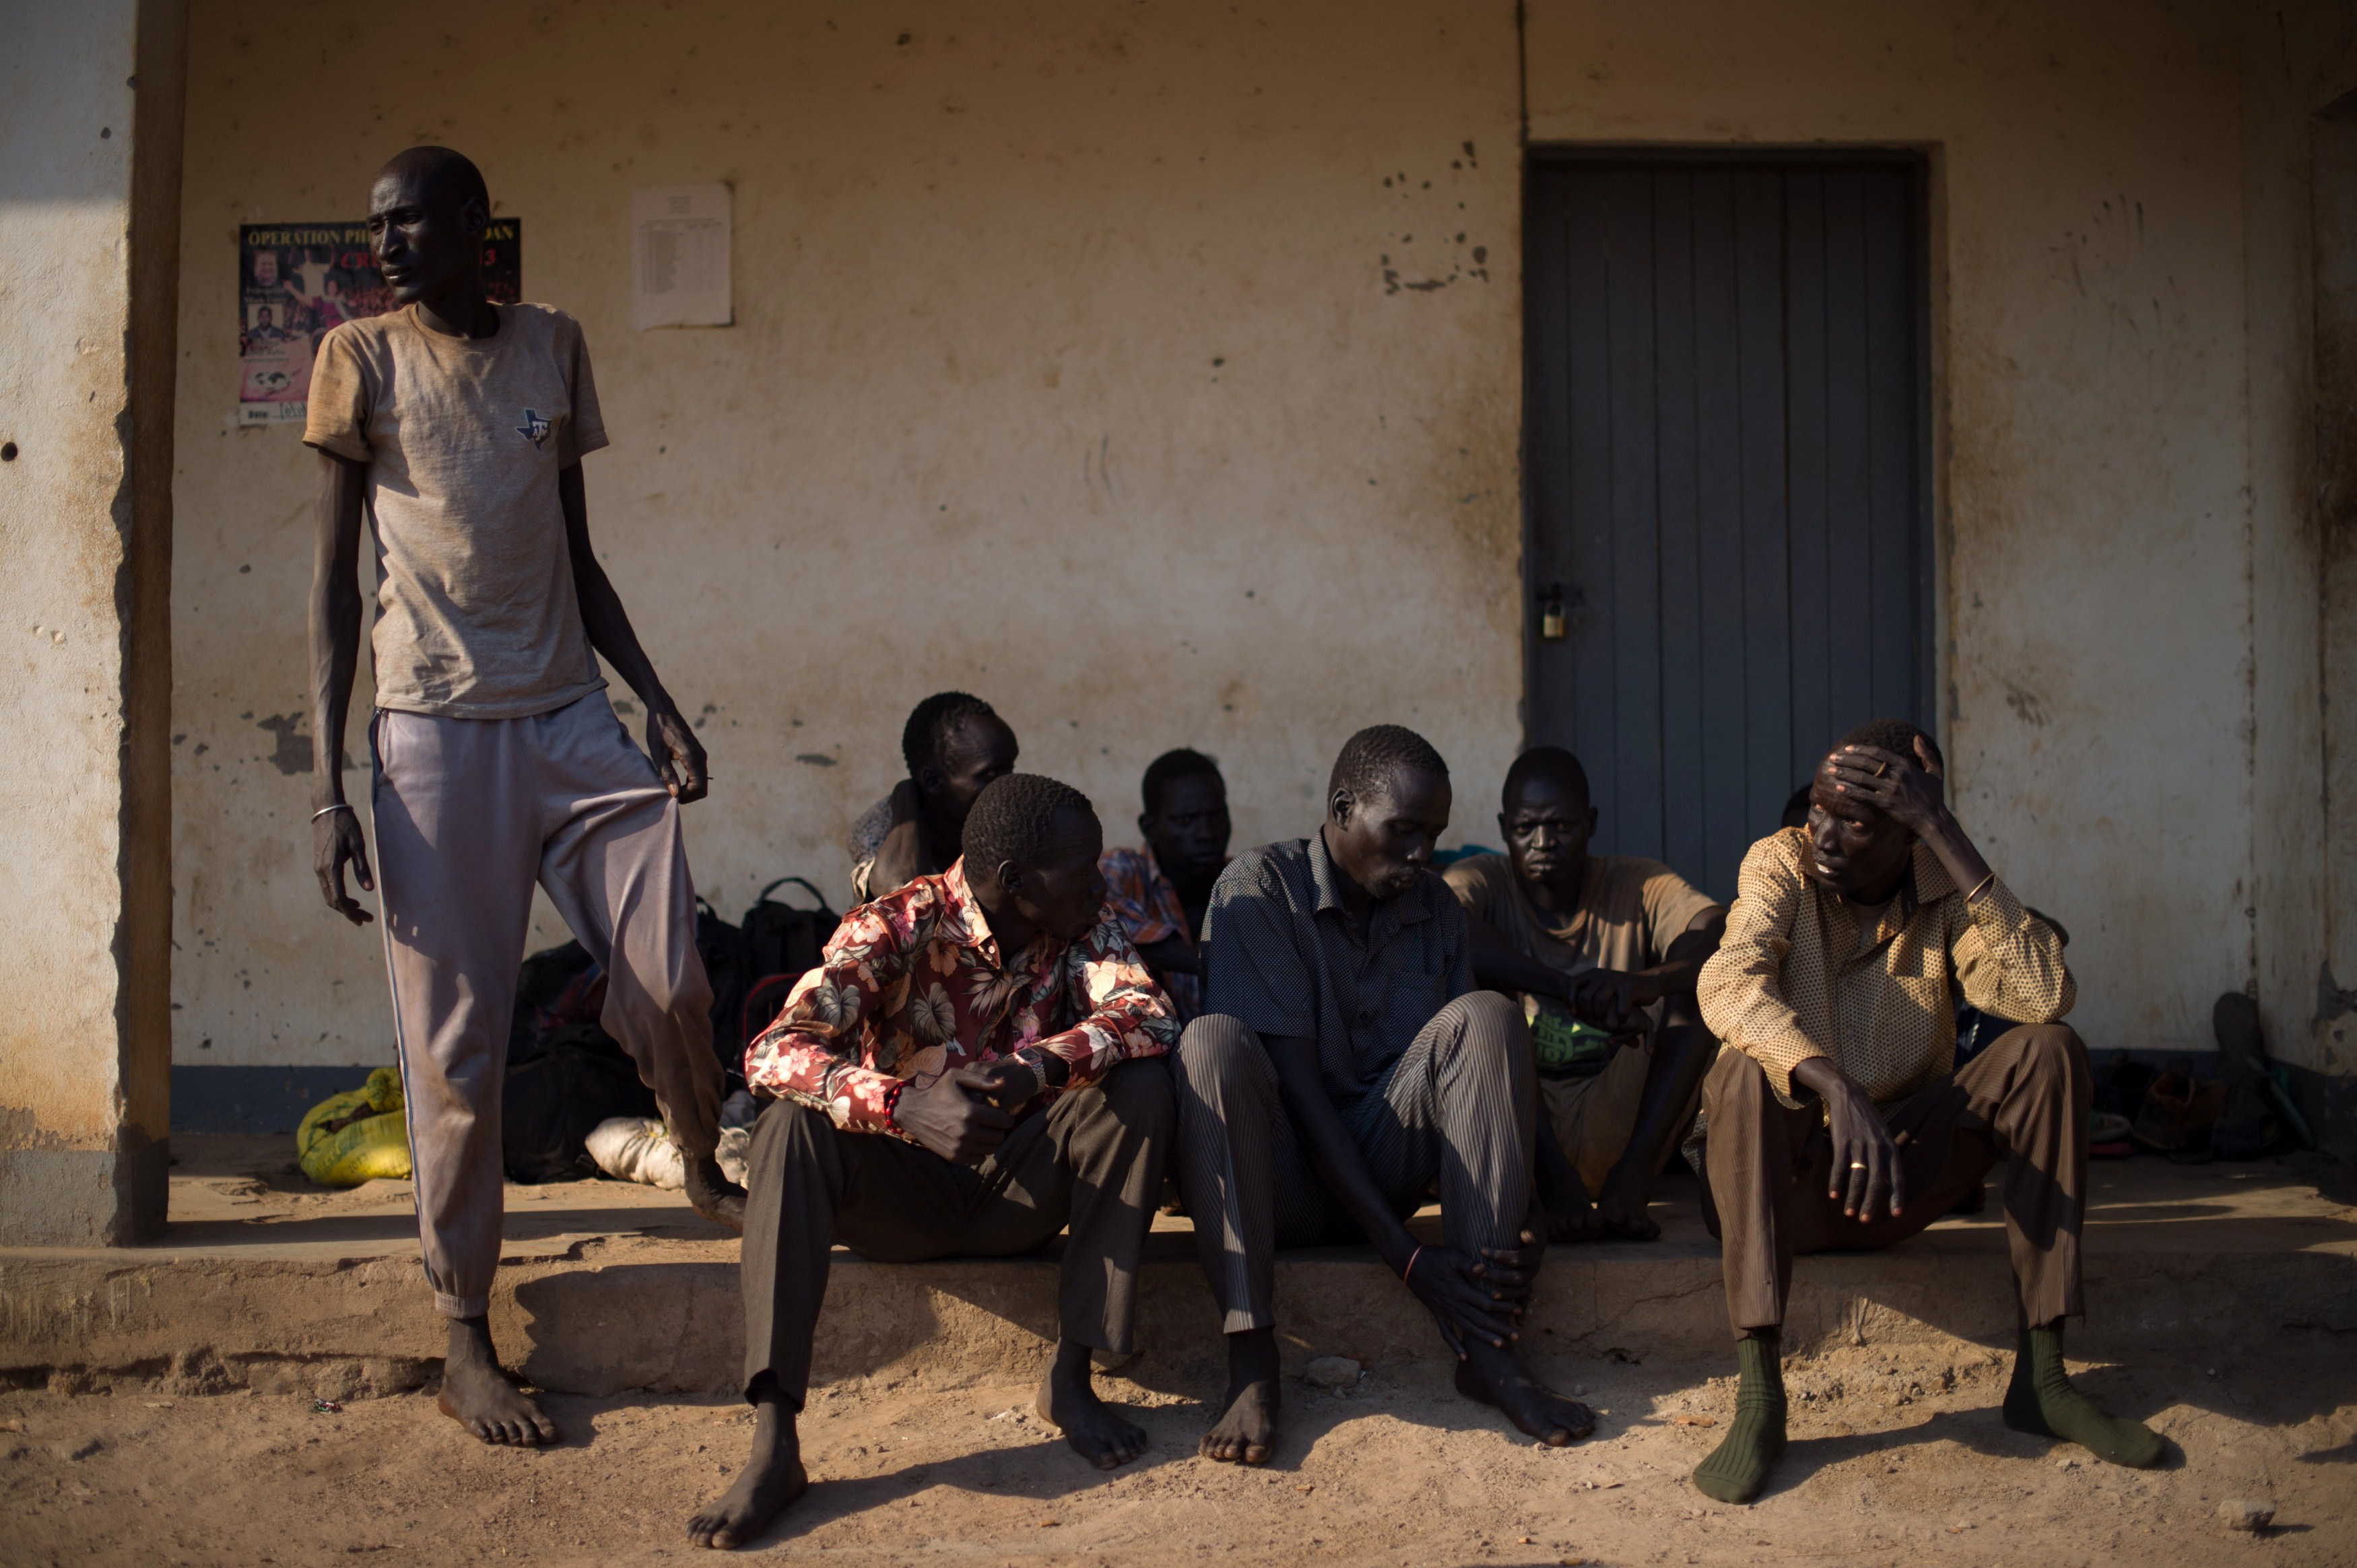 Men who claim to have deserted theSudan People's Liberation Army (SPLA) sit outside a police station in Mvolo, about 120 kms (75 miles) from Rumbek in the Western Equatoria State, on Tuesday (AFP PHOTO/PHIL MOORE)